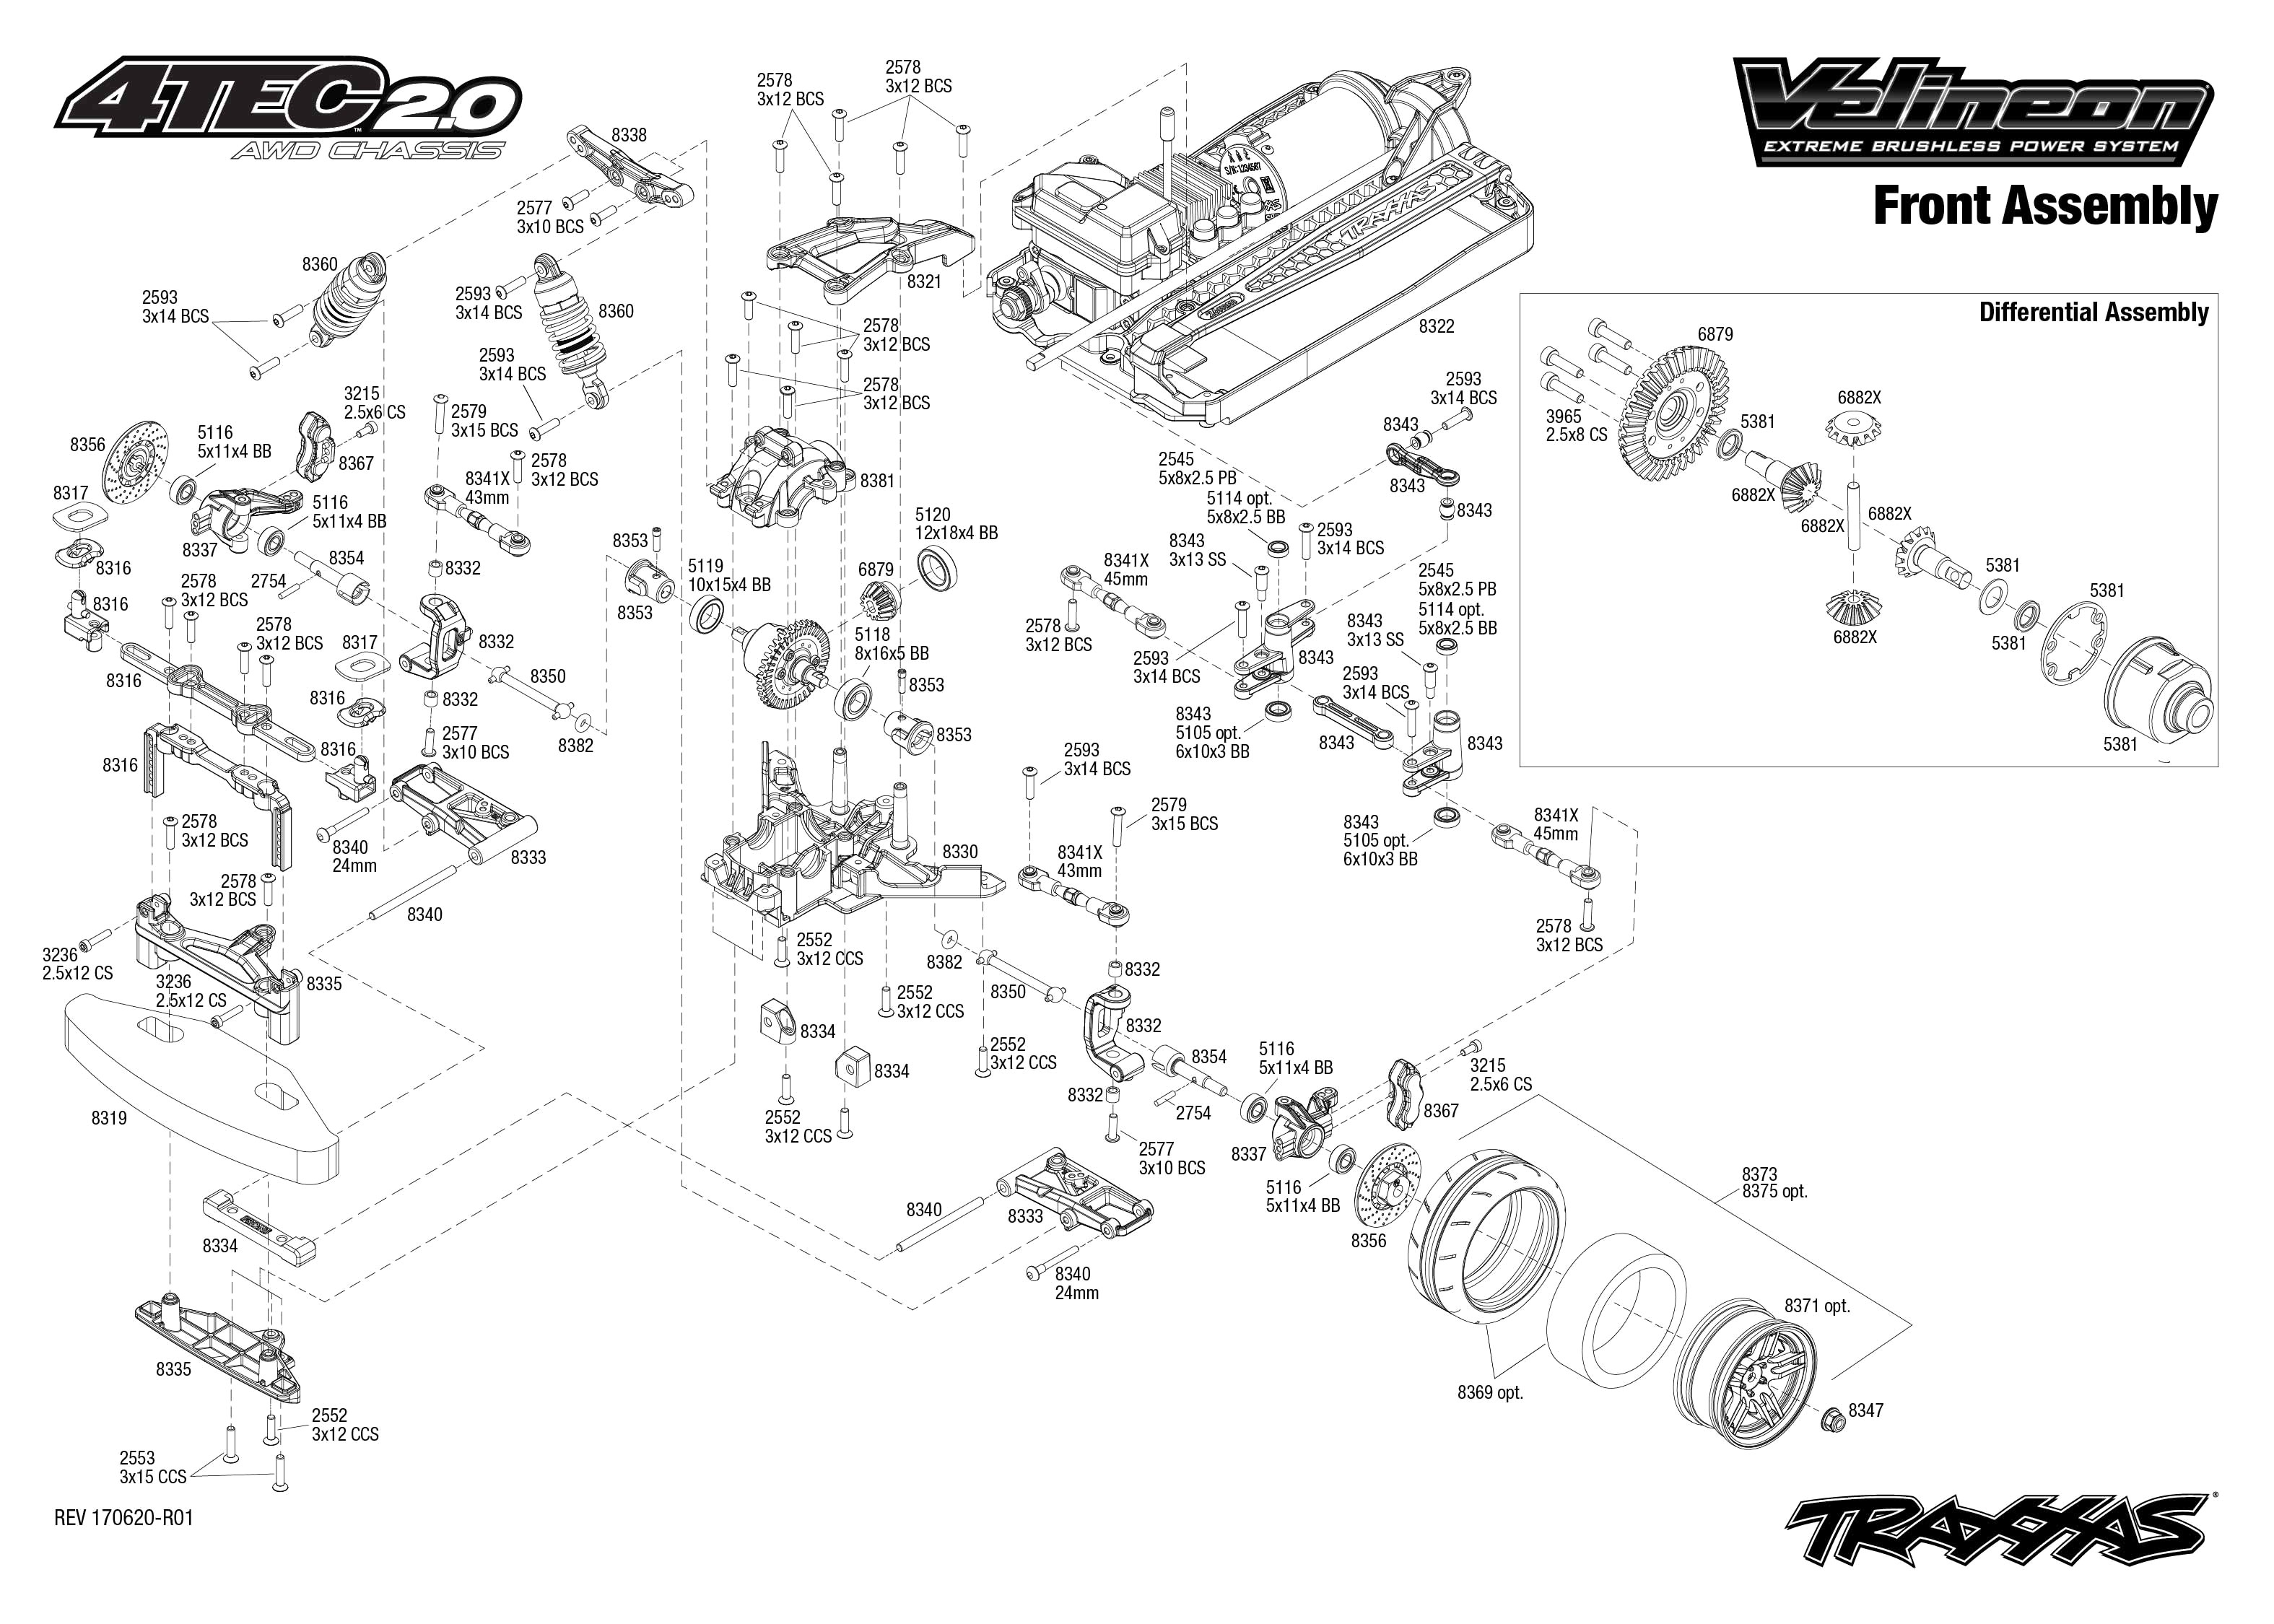 Exploded view Traxxas 4 Tec 2 0 VXL Front part